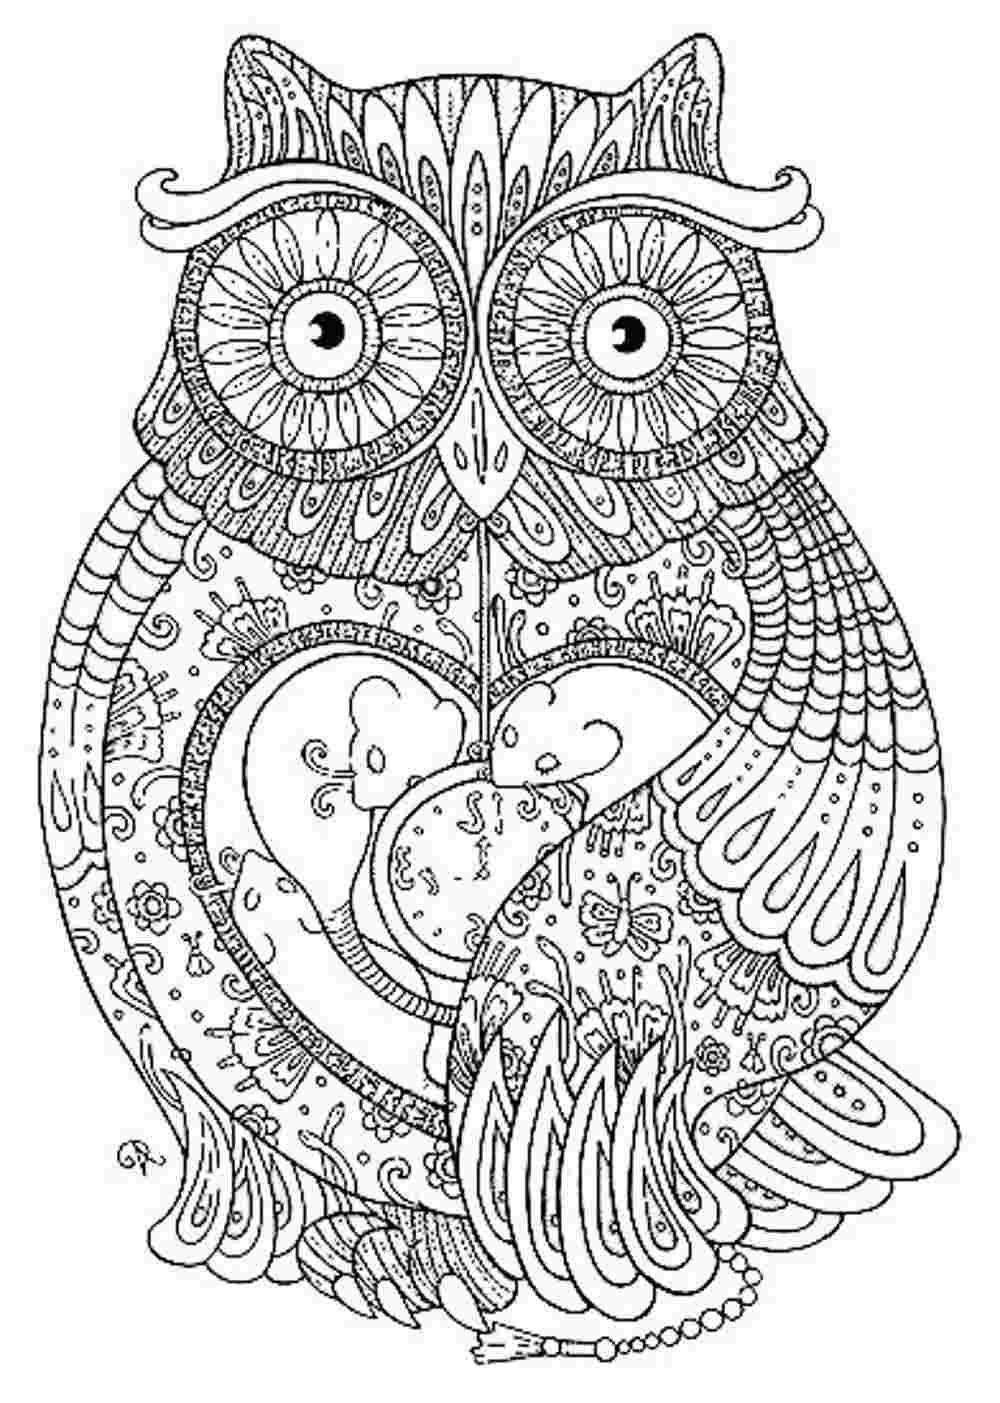 Animal Mandala Coloring Pages Free Mandalas Coloring 13 Coloring Pages Coloring Pages For Kids Coloring P Boyama Sayfalari Mandala Mandala Art Boyama Sayfalari